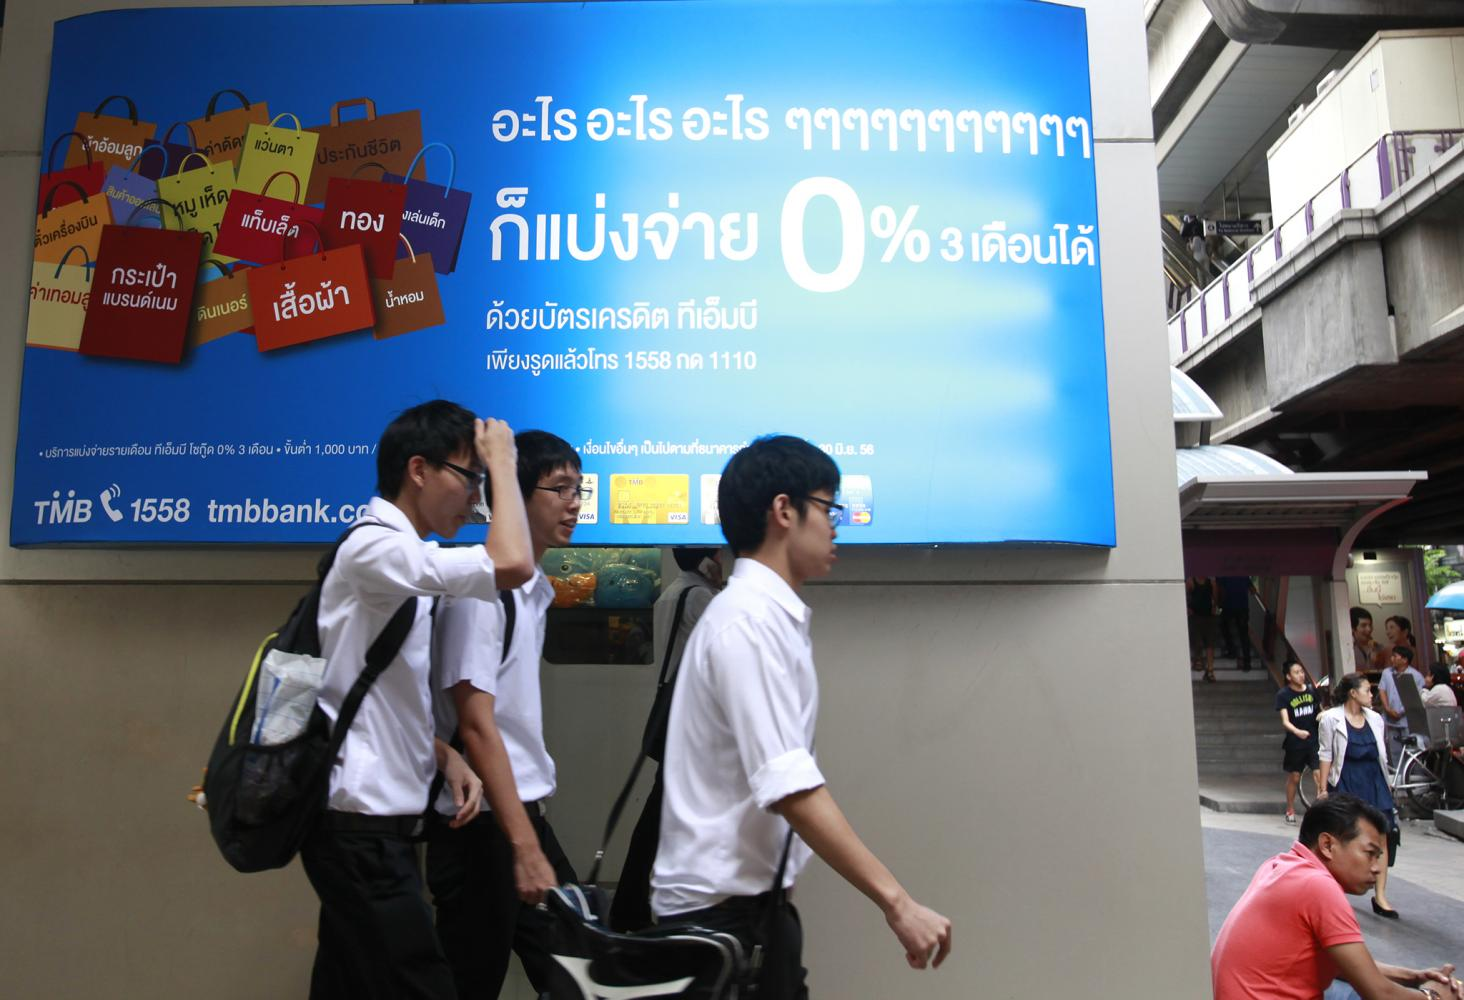 People walk past an advertising board promoting zero-rate deals for credit cards. Thanarak Khunton